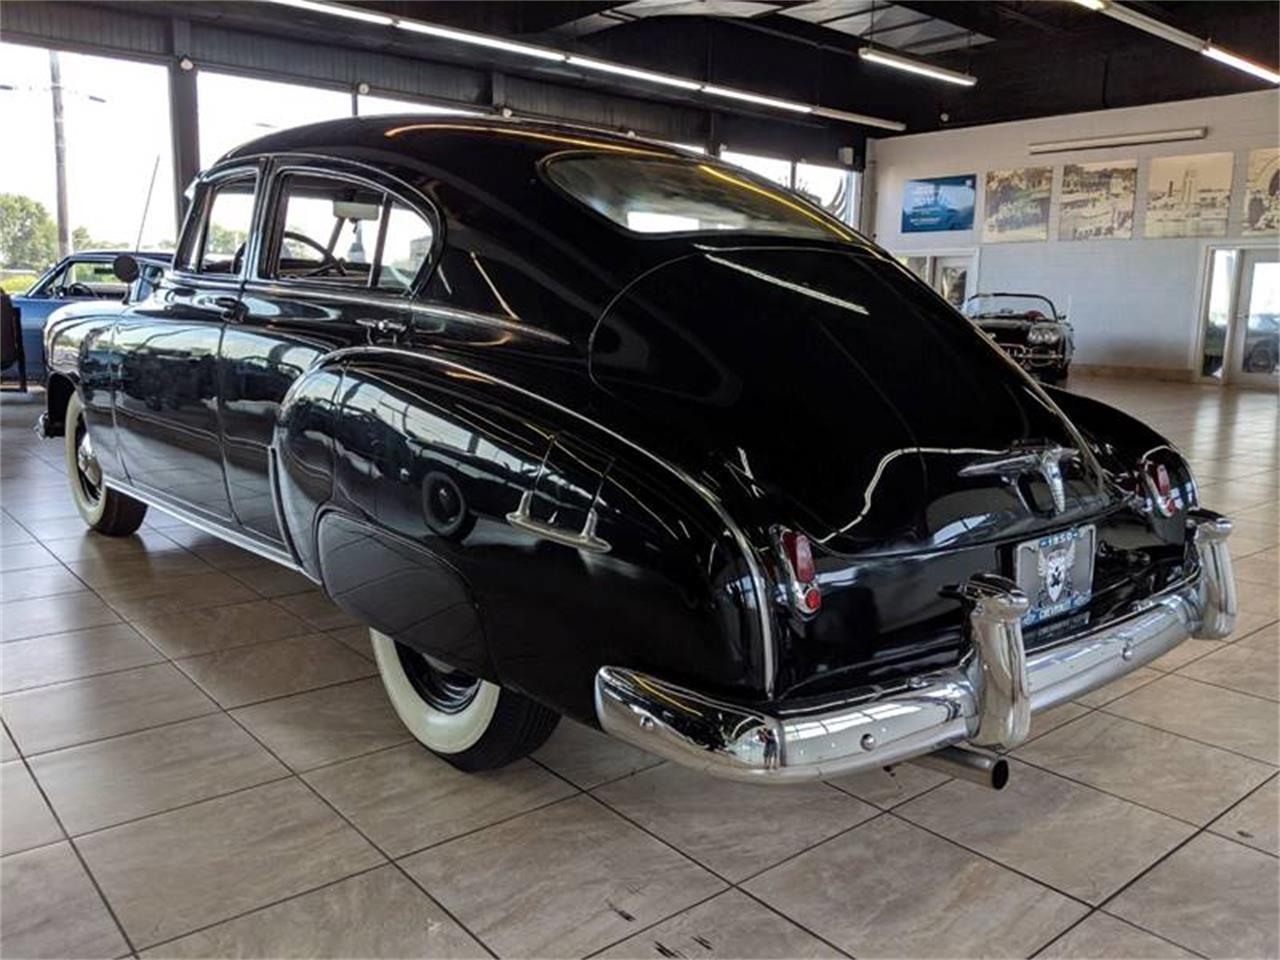 1950 Chevrolet Fleetline for sale in St. Charles, IL – photo 3